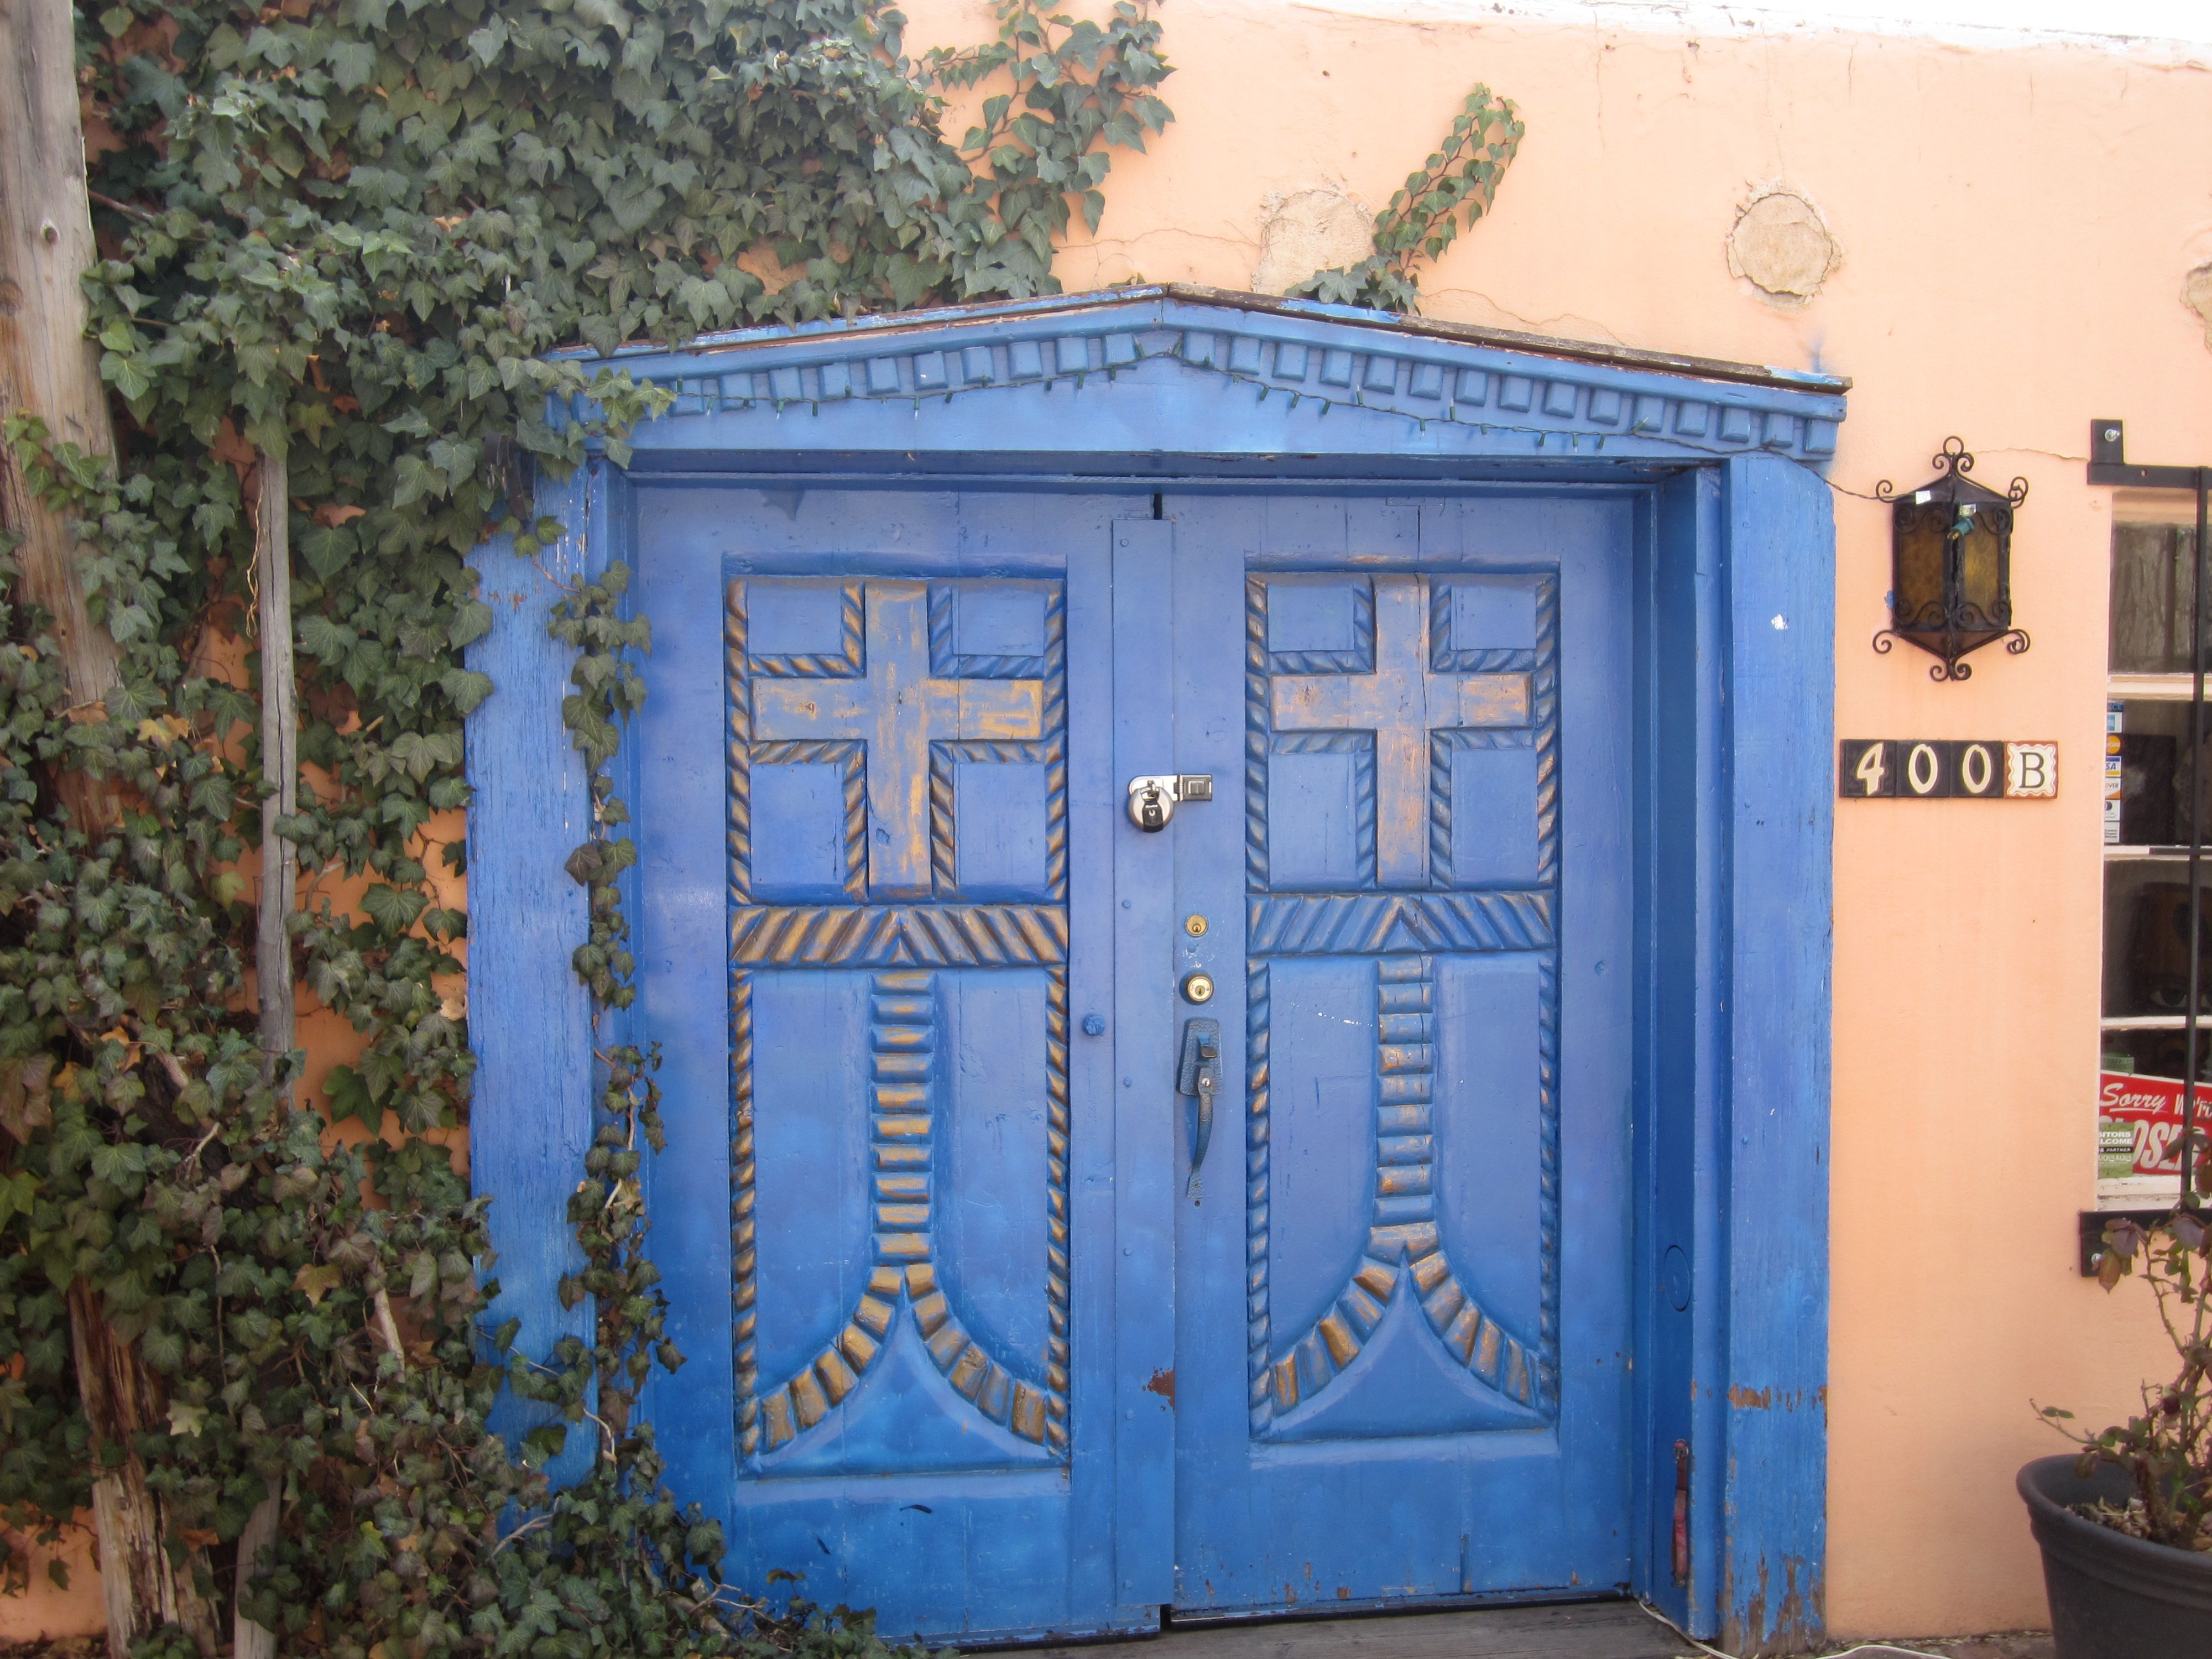 Beautiful southwestern door. Love the blue and the design. & Beautiful southwestern door. Love the blue and the design ...